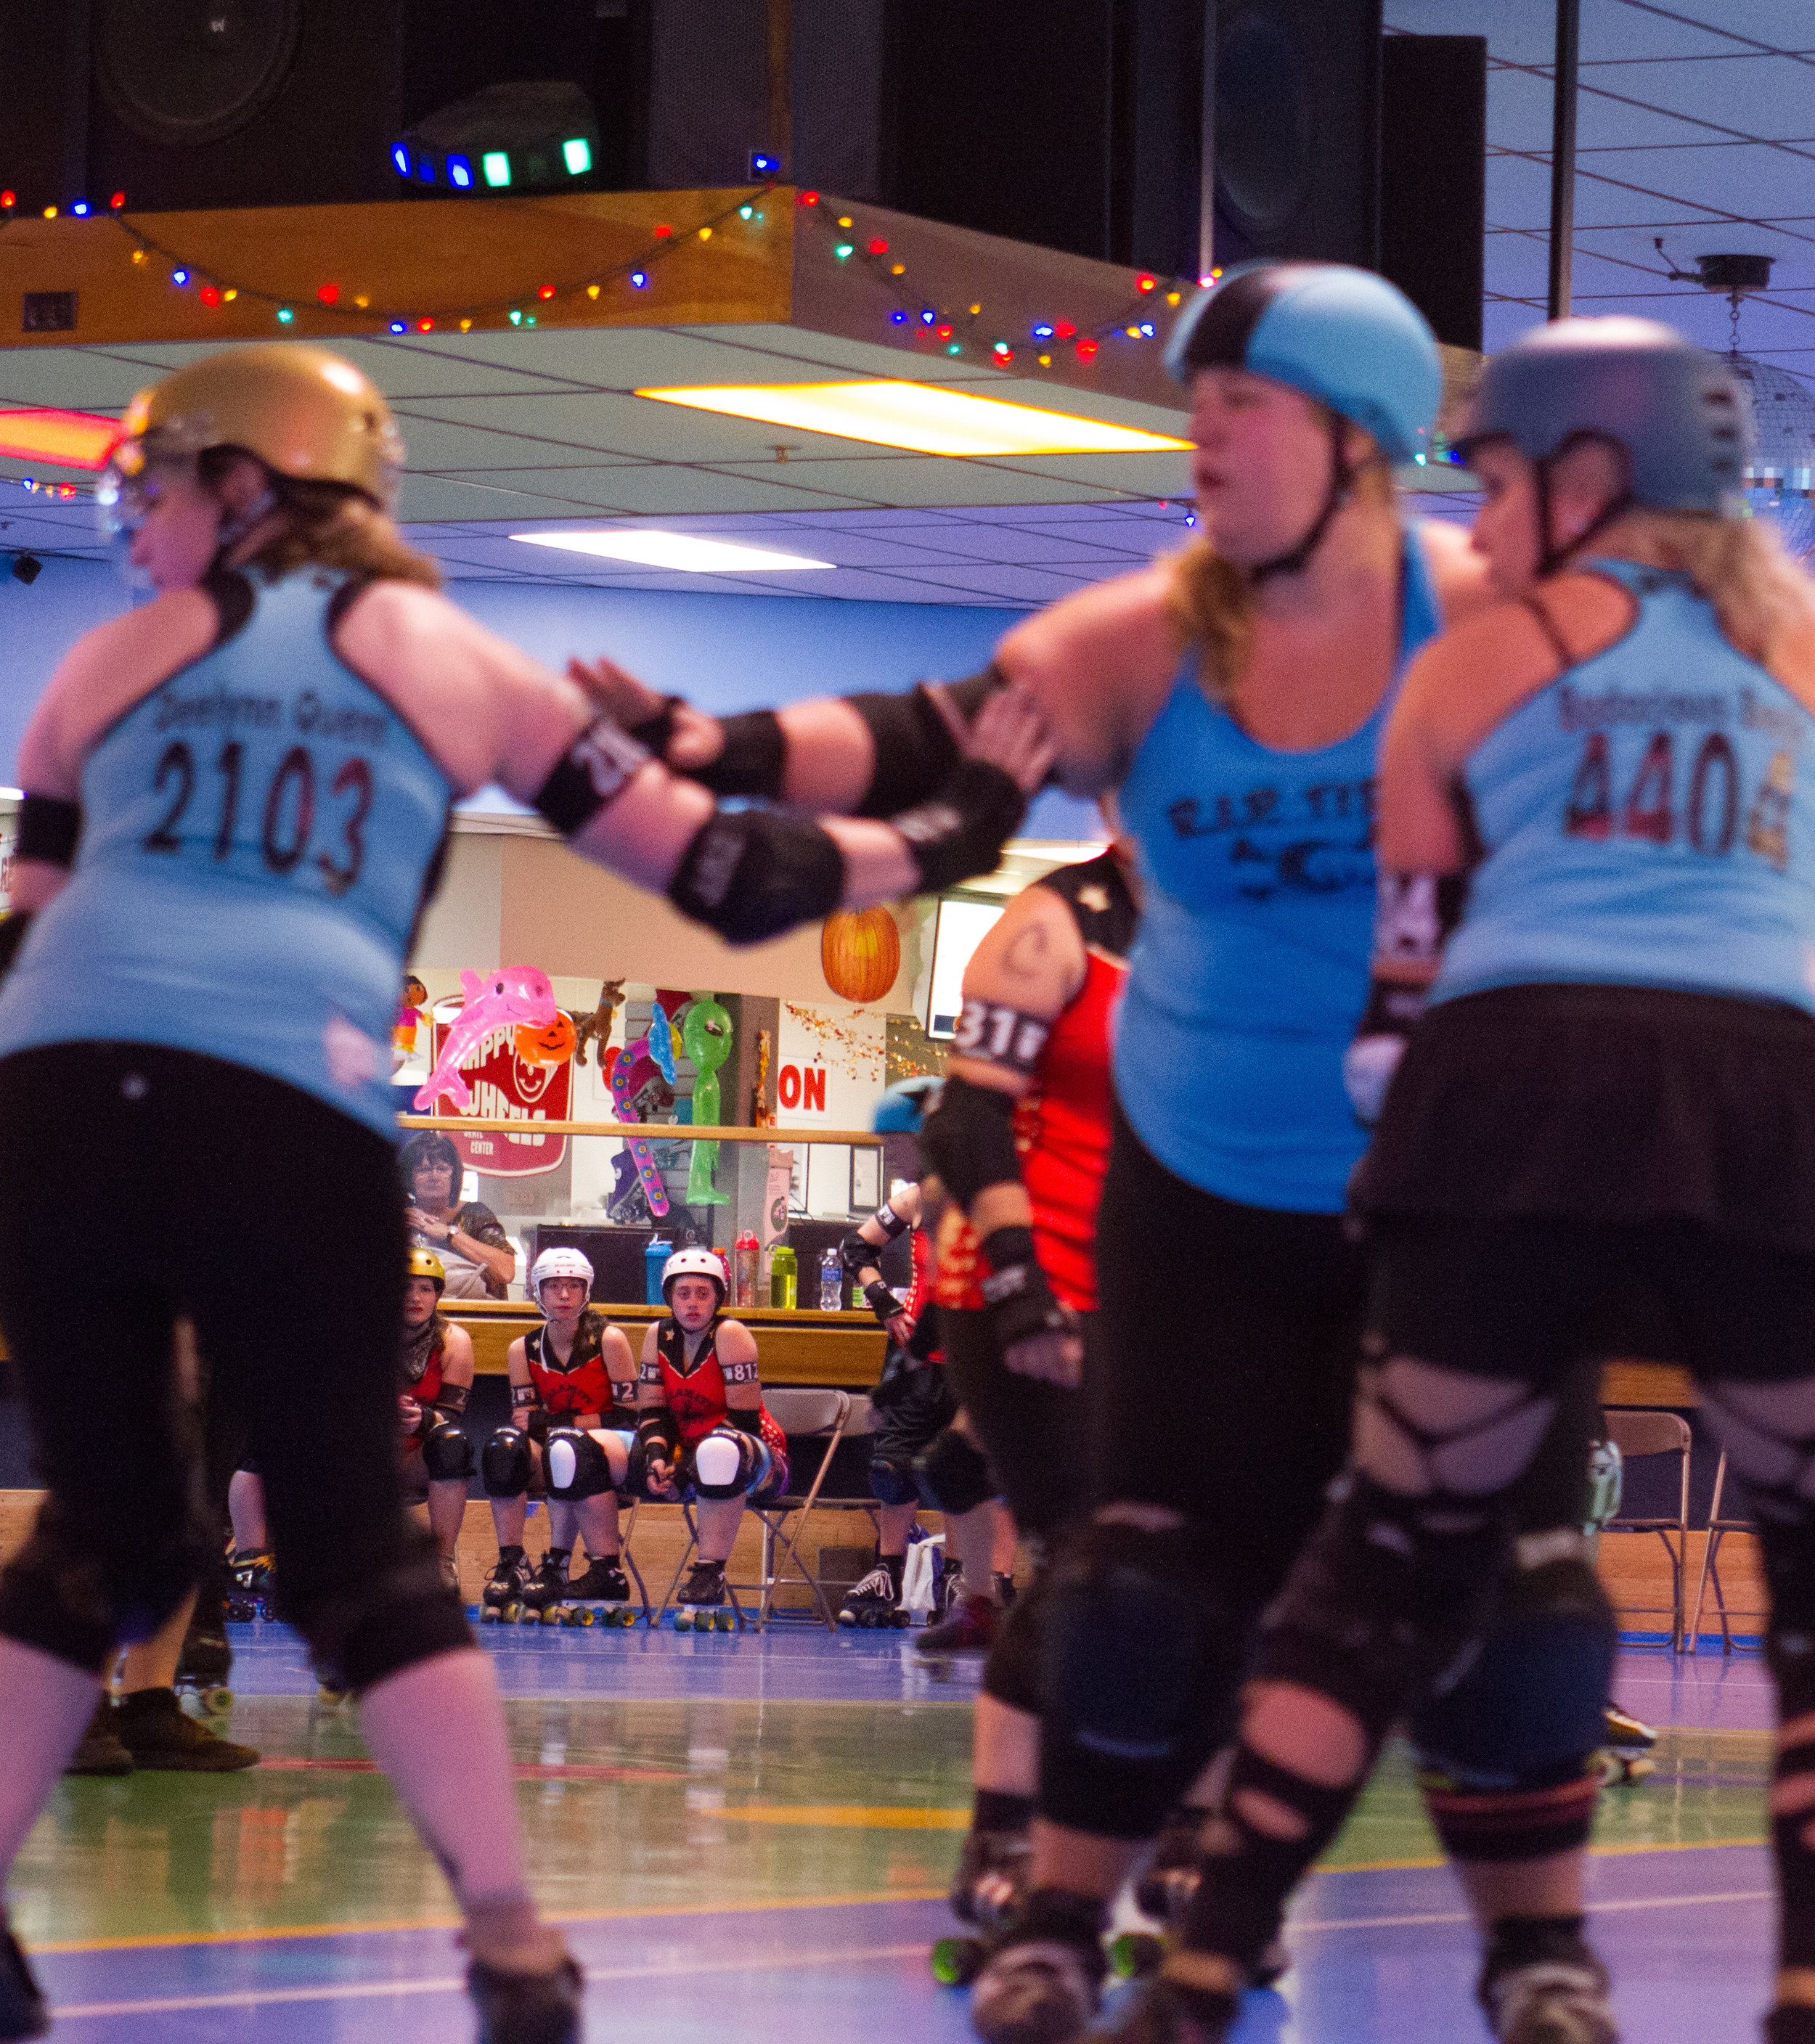 170923 firstbout0267.jpg